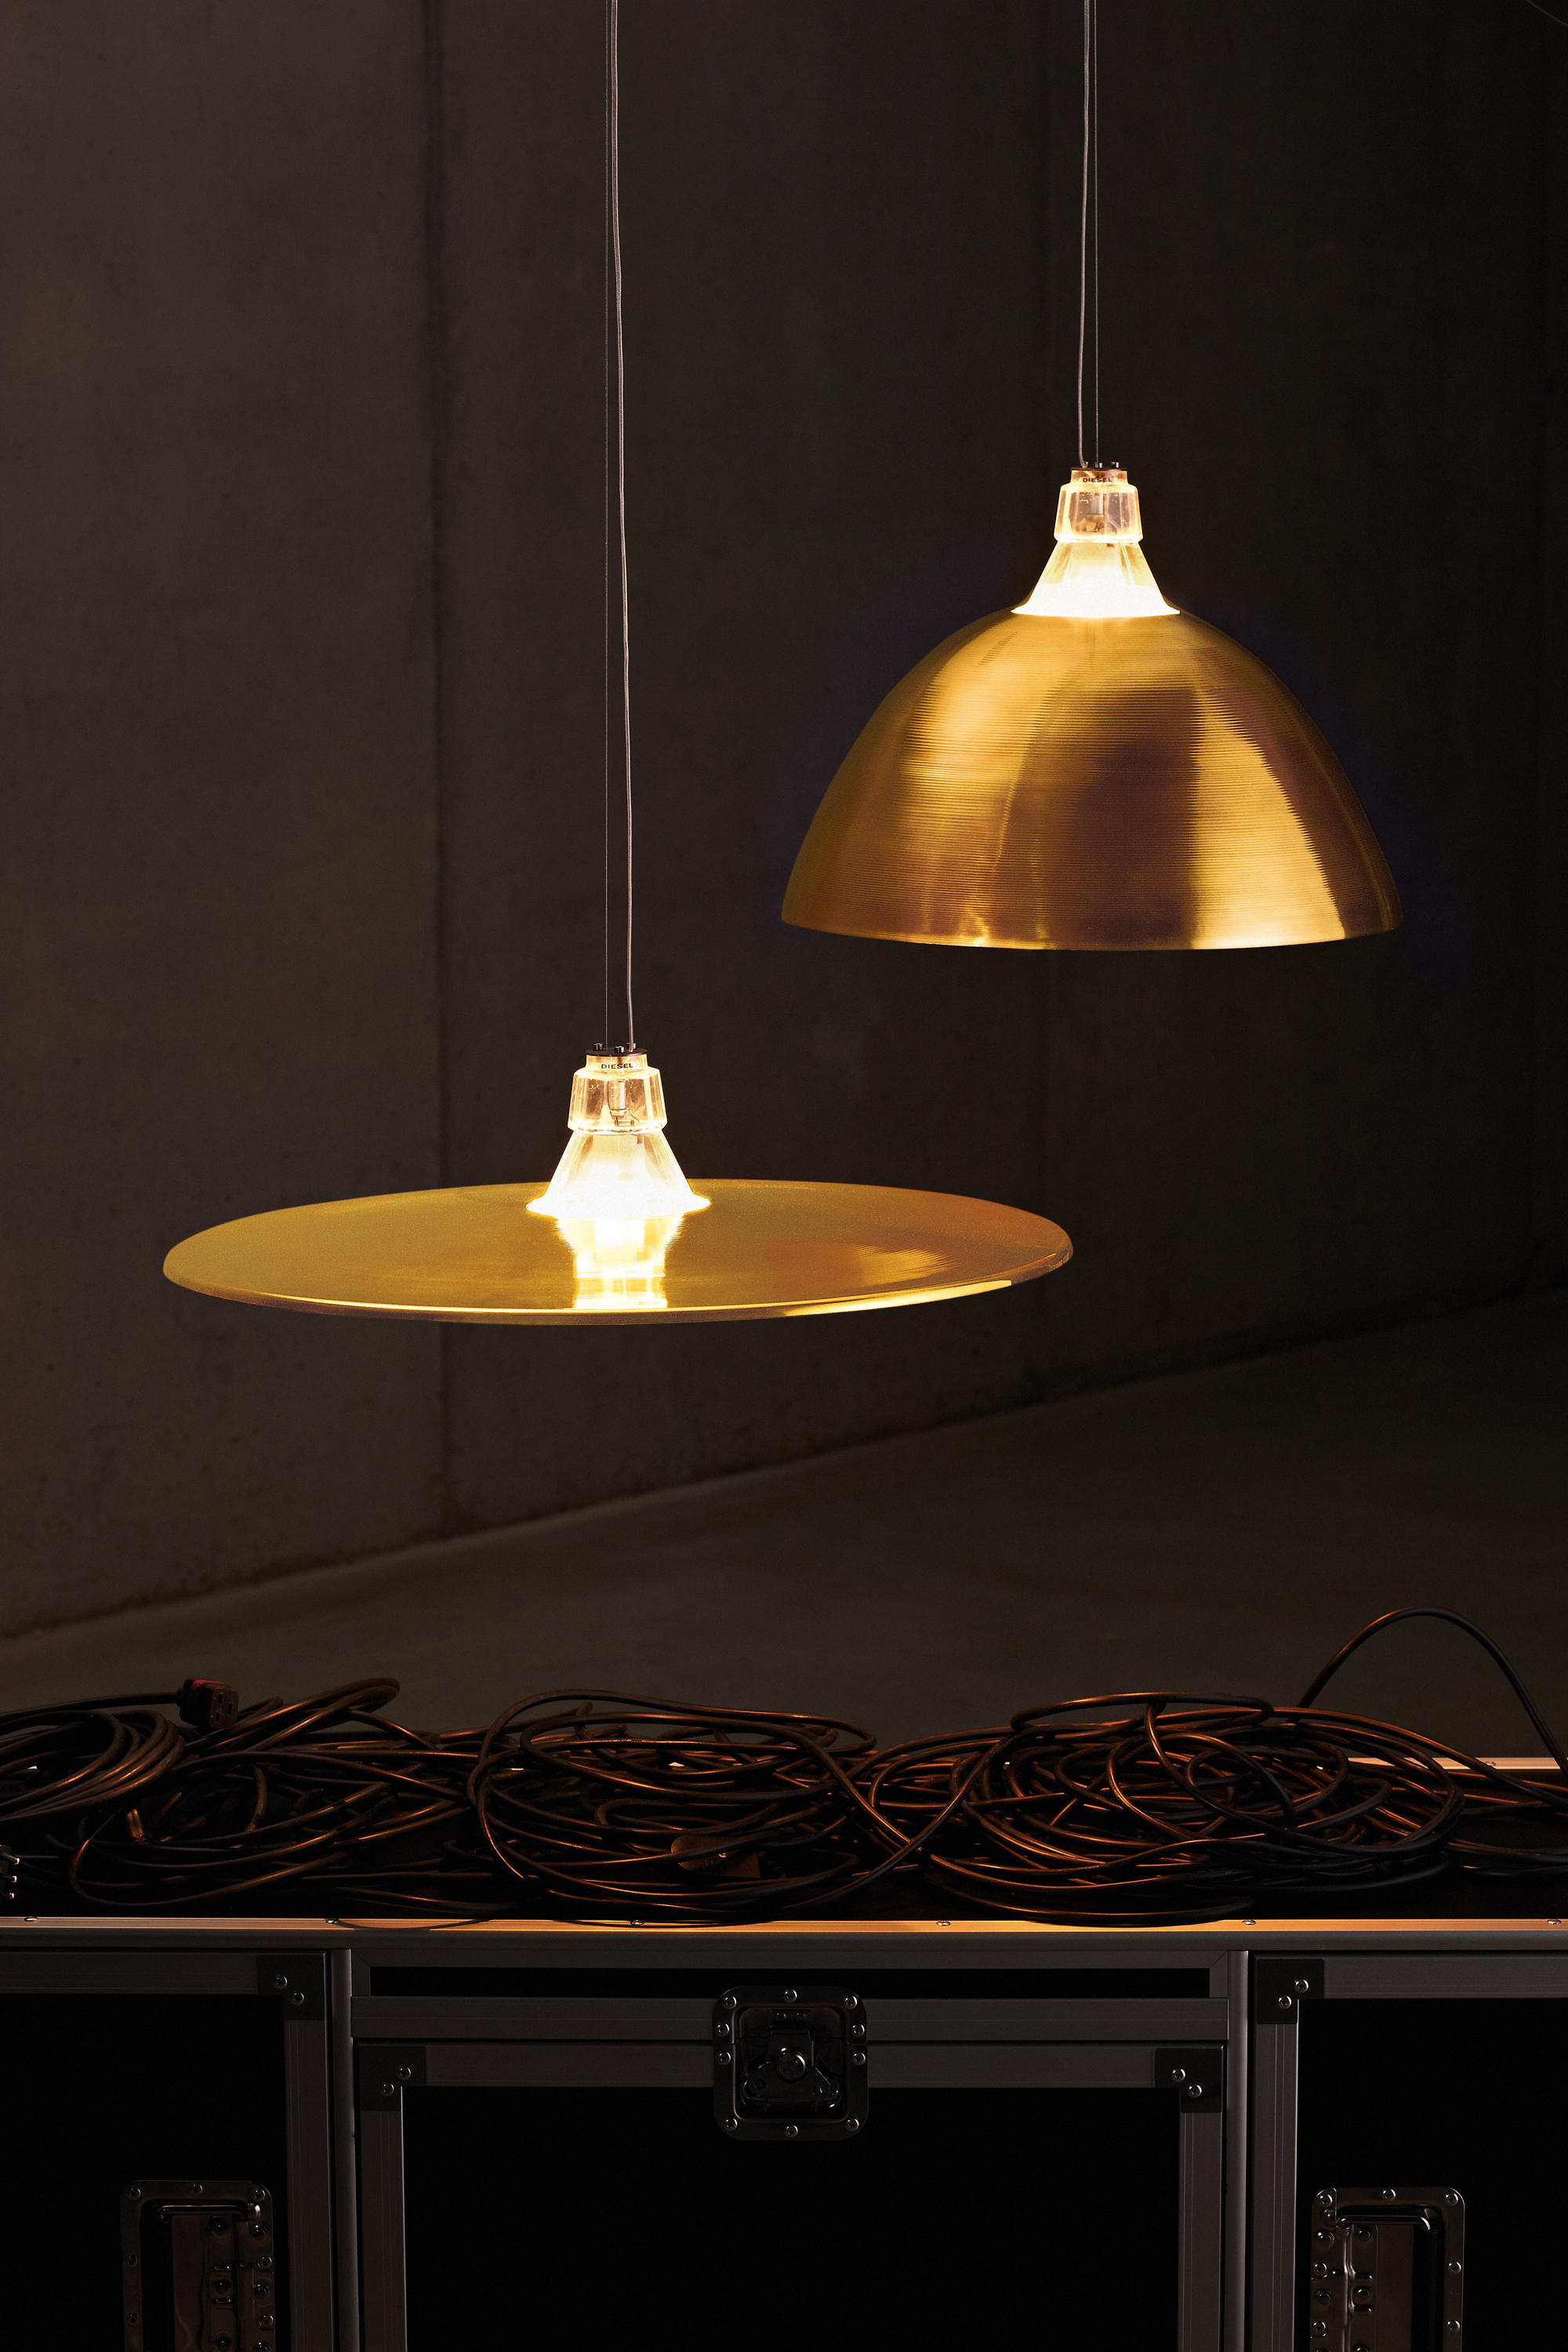 Bell Suspension By Diesel By Foscarini ...